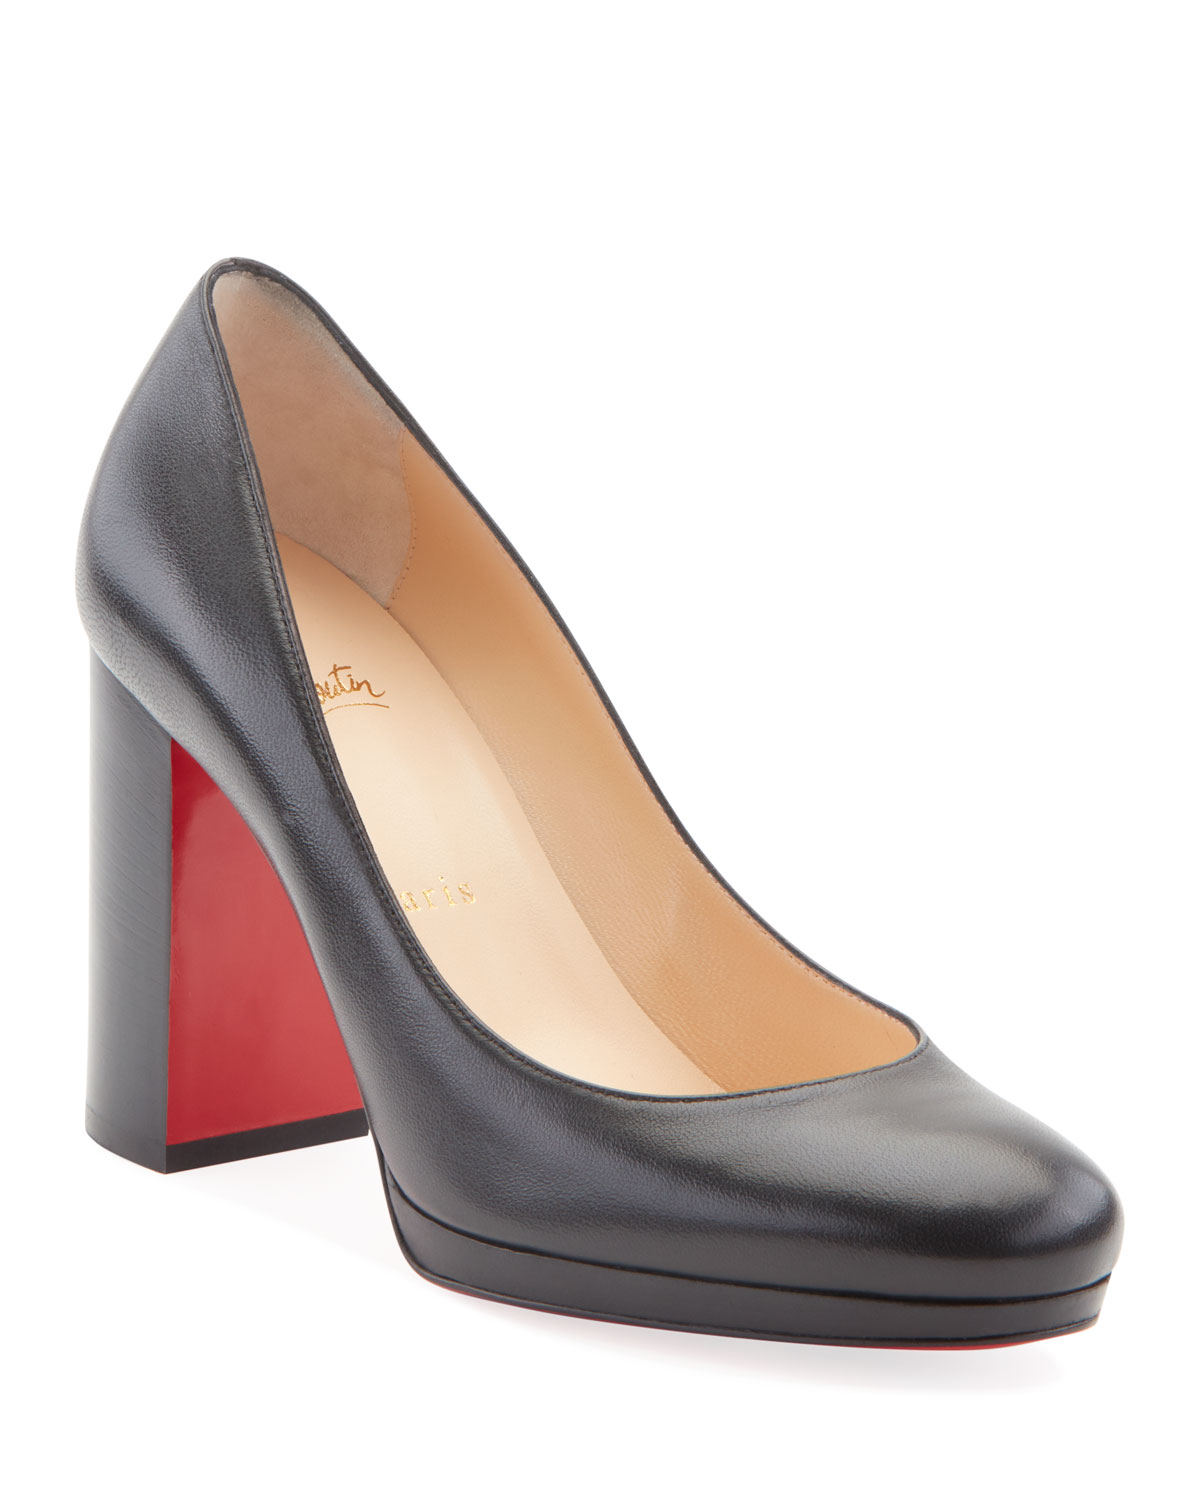 Kabetts Leather Block Heel Red Sole Pumps by Christian Louboutin